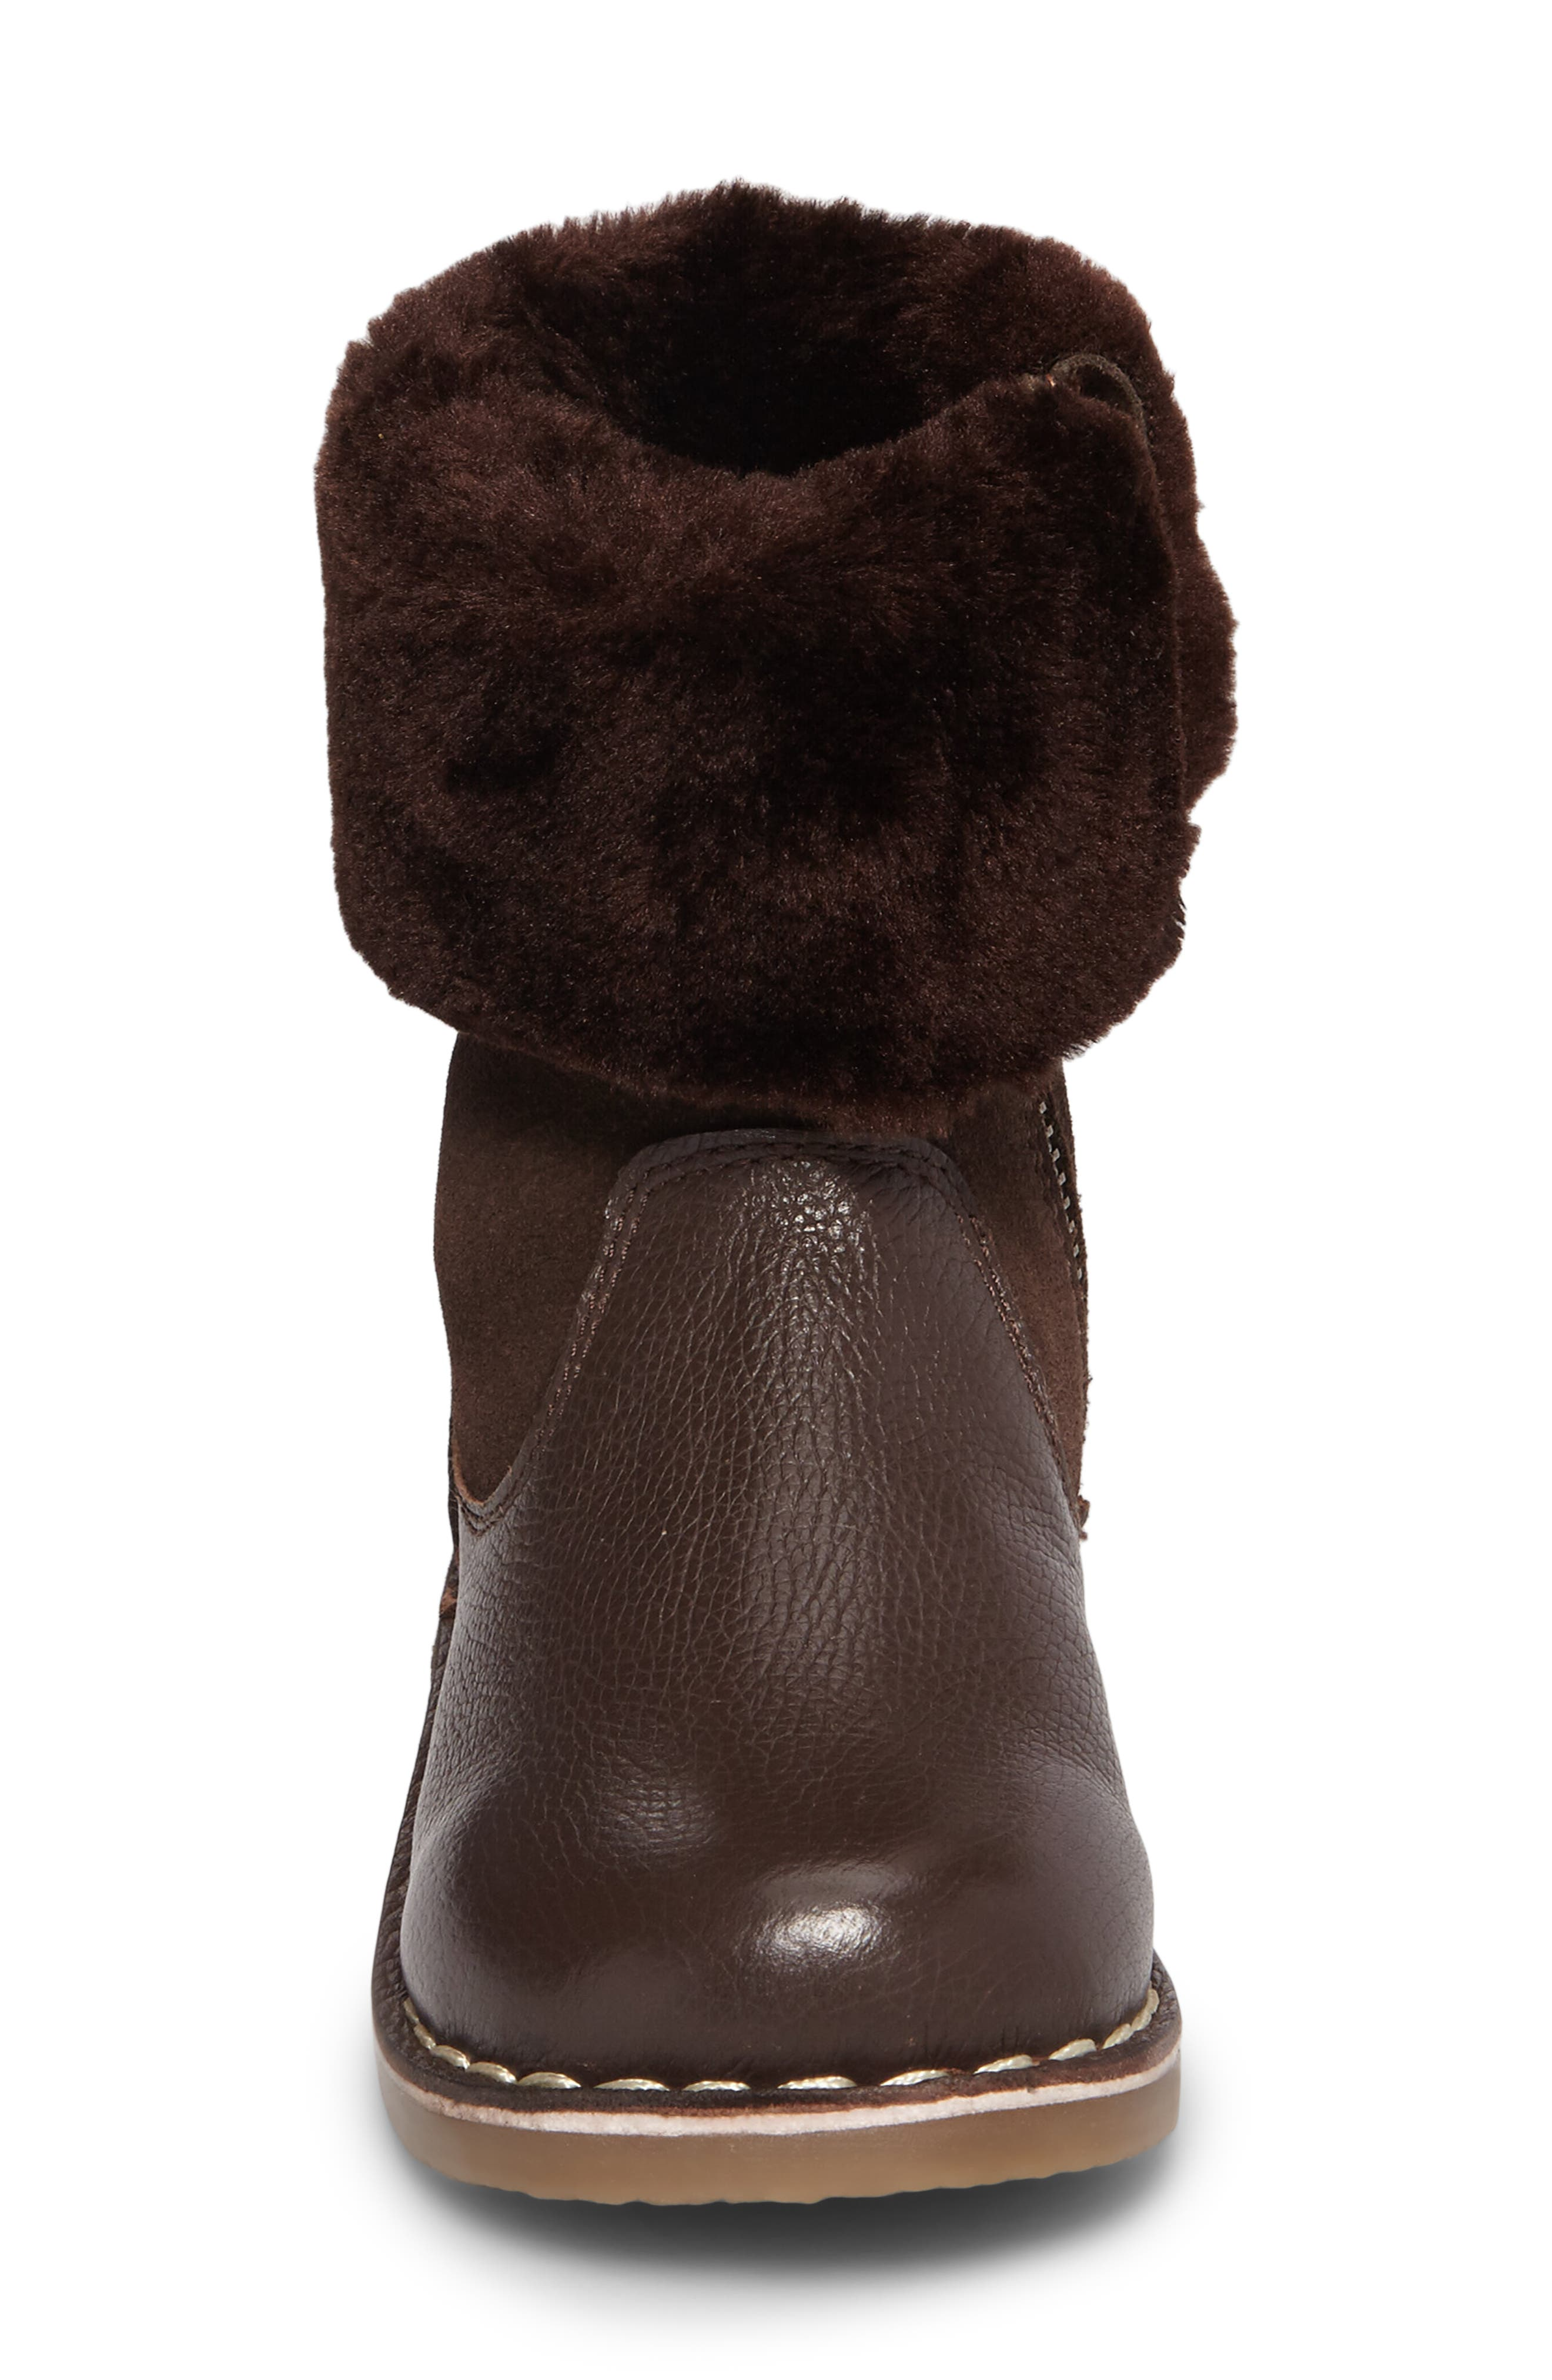 Faux Fur Cuffed Boot,                             Alternate thumbnail 4, color,                             Chocolate Brown